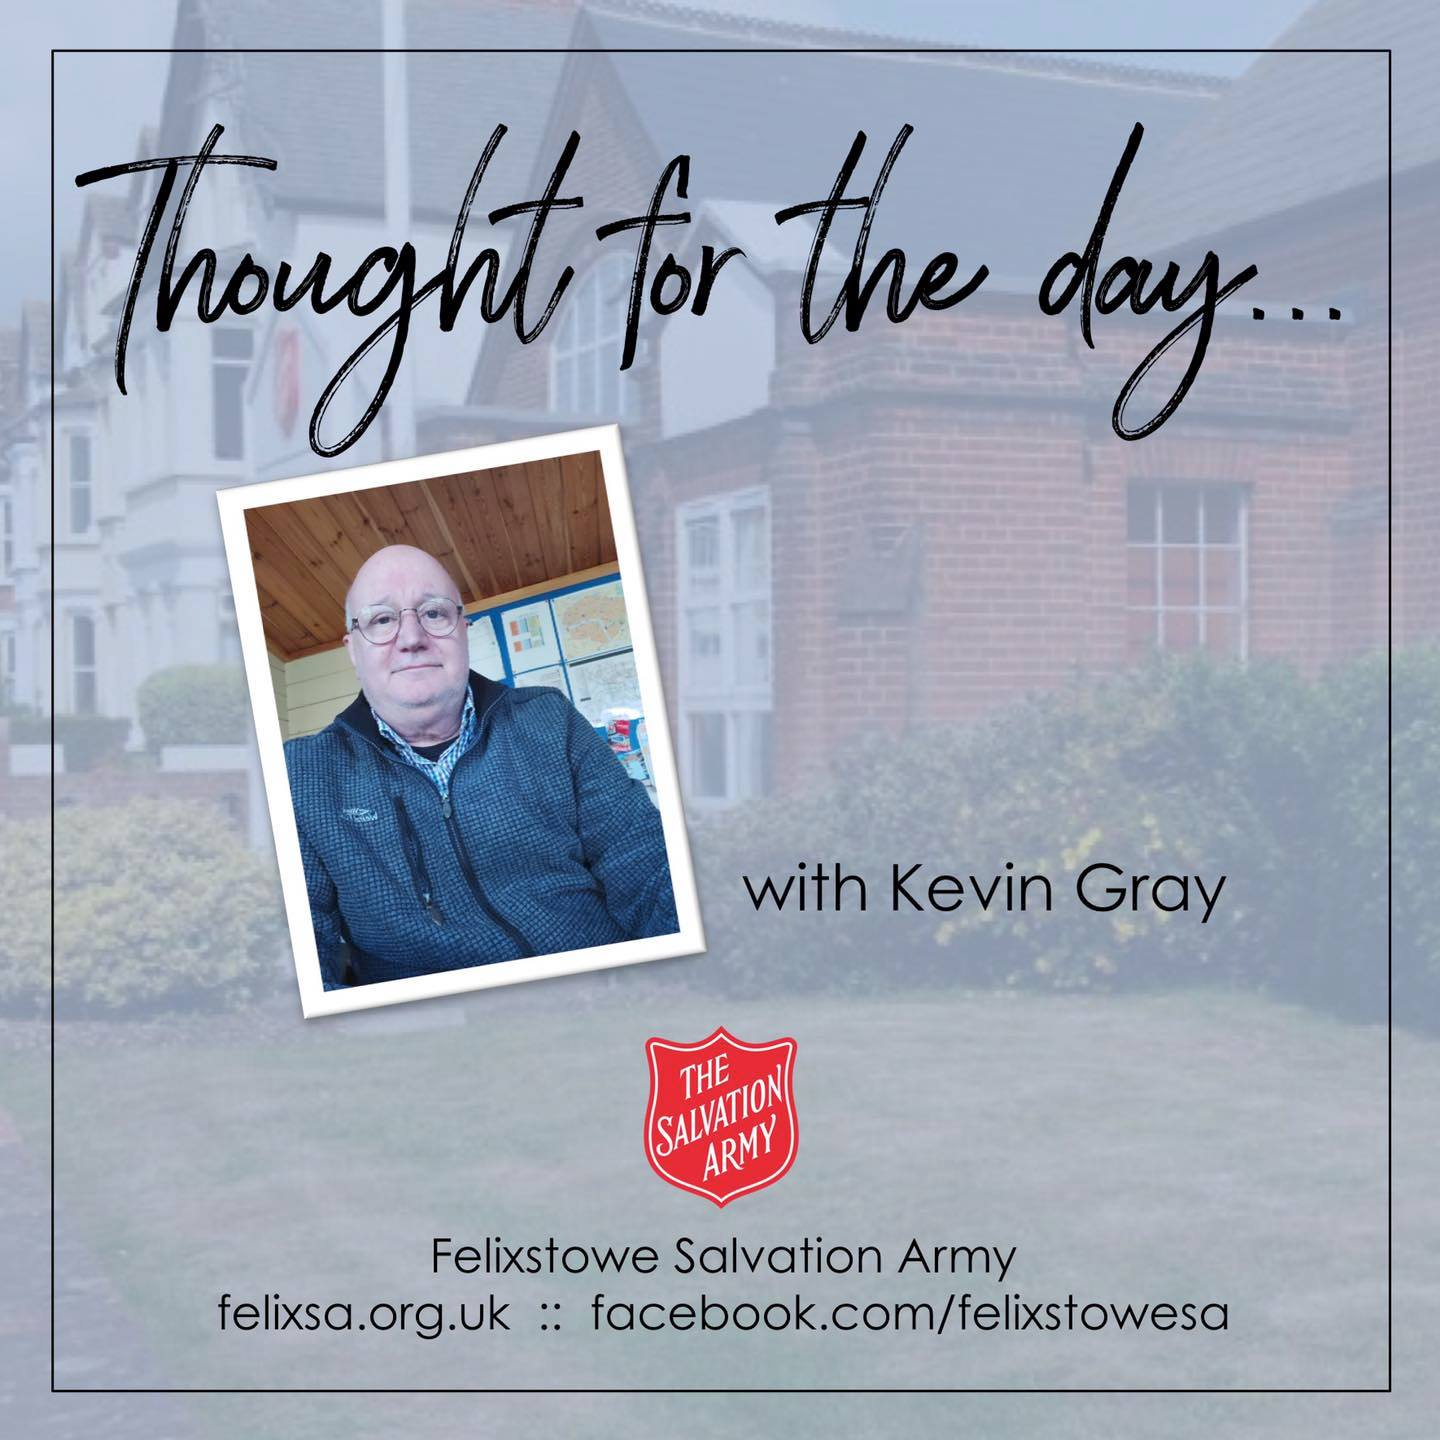 Thought for the Day with Kevin gray